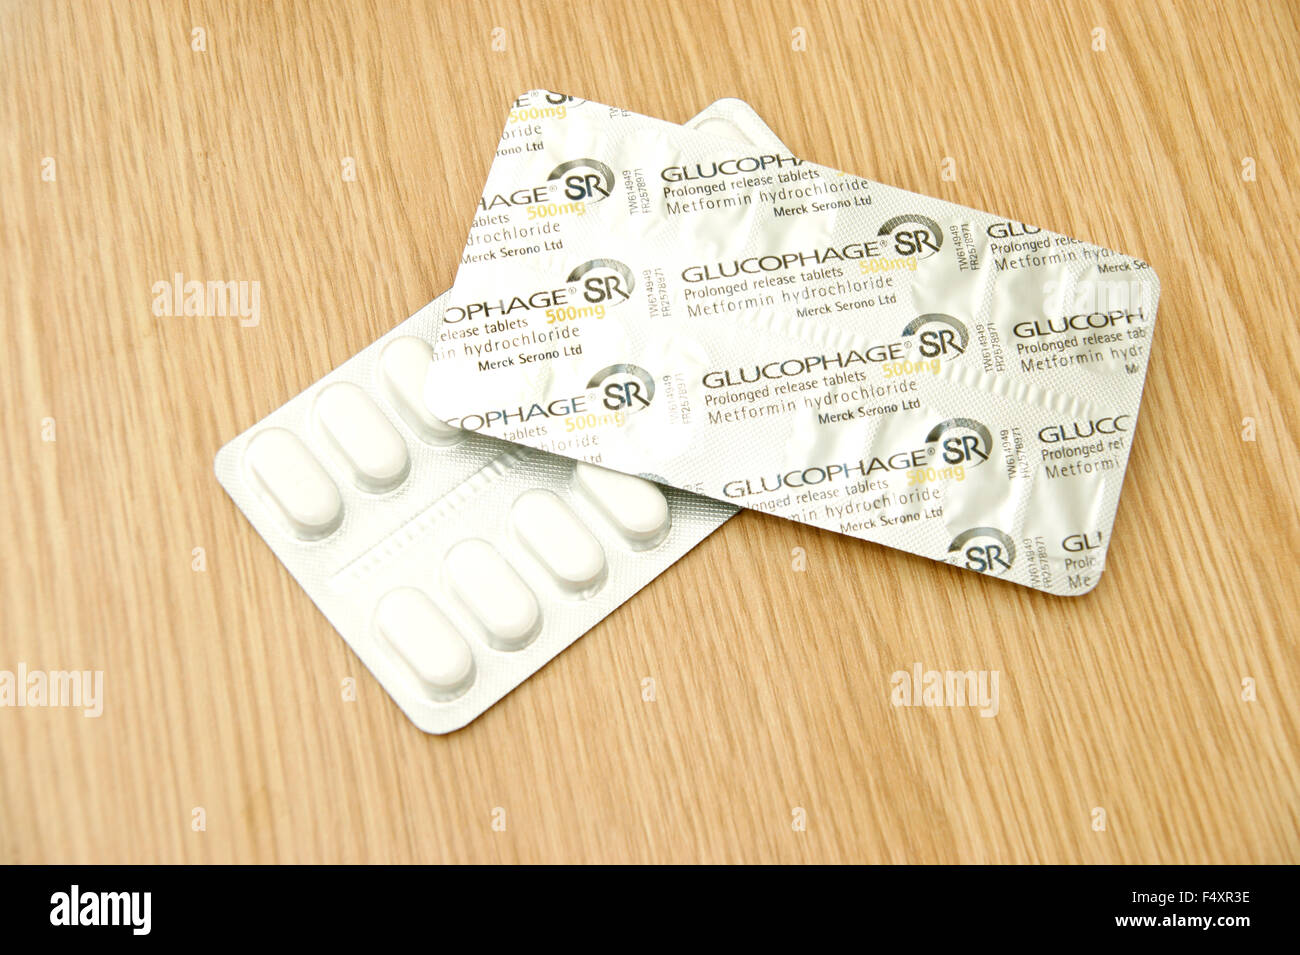 naltrexone generic india